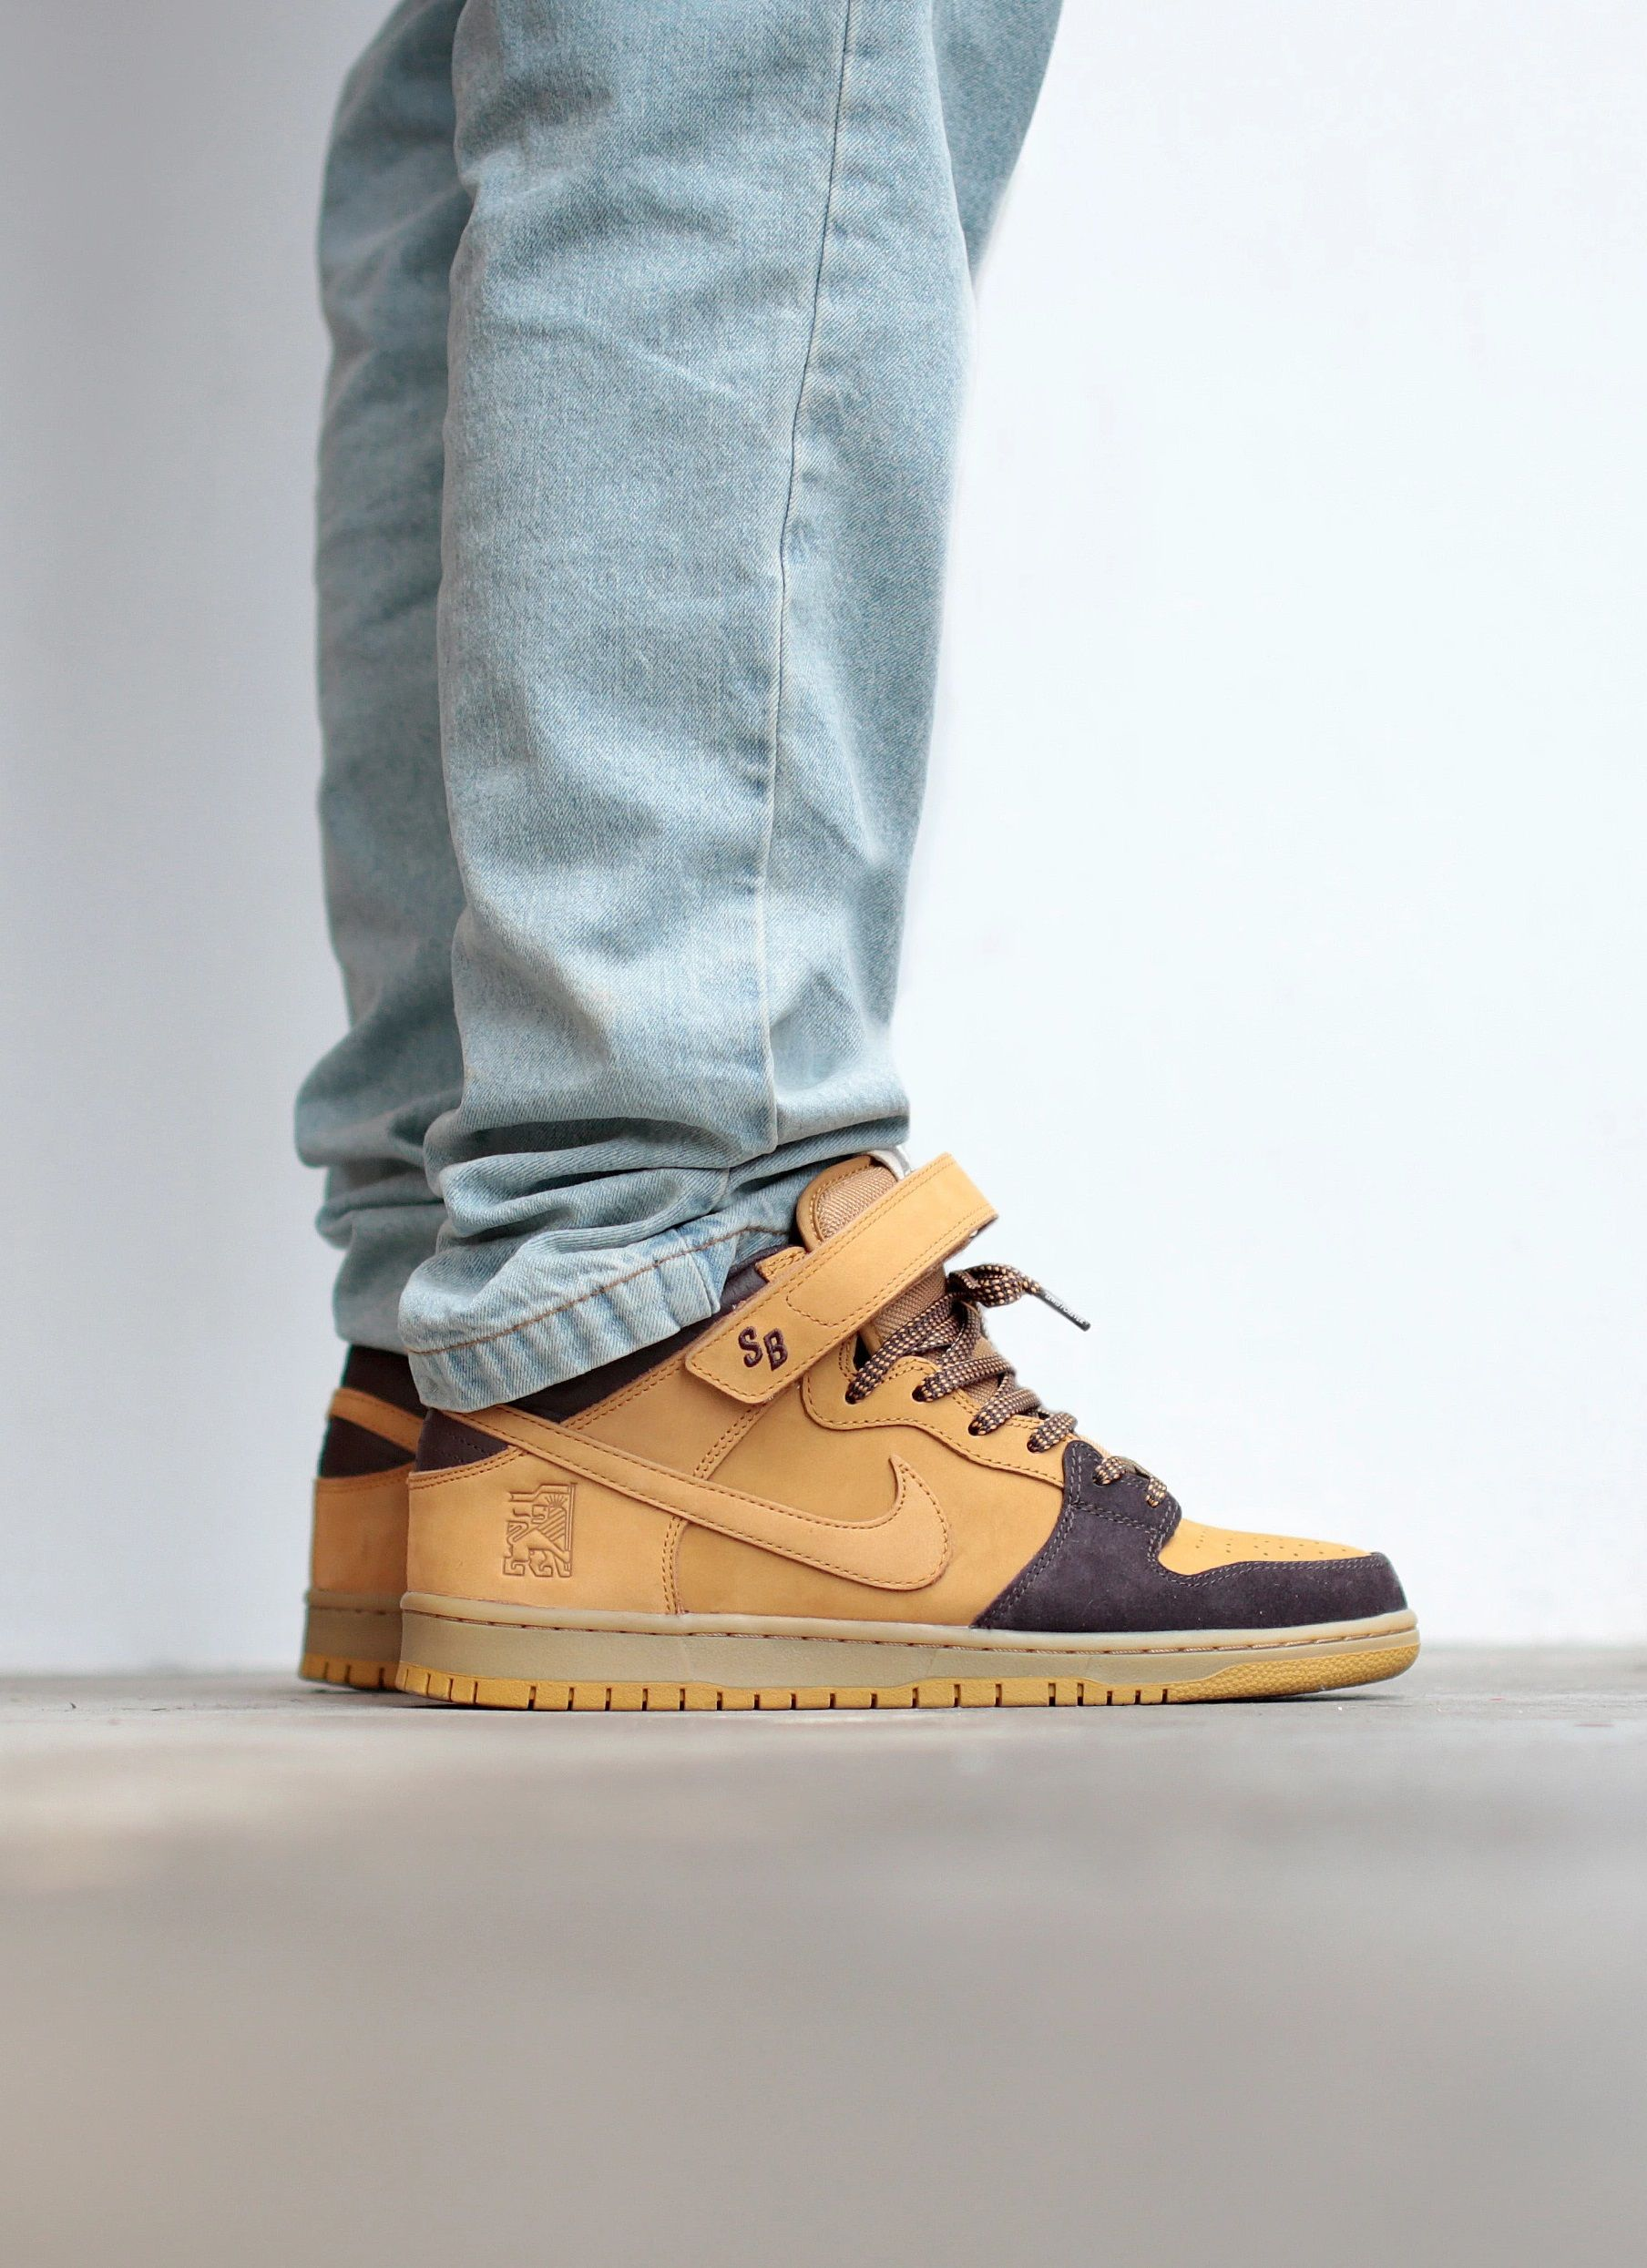 Nike SB Dunk Mid Pro 'Lewis Marnell' in